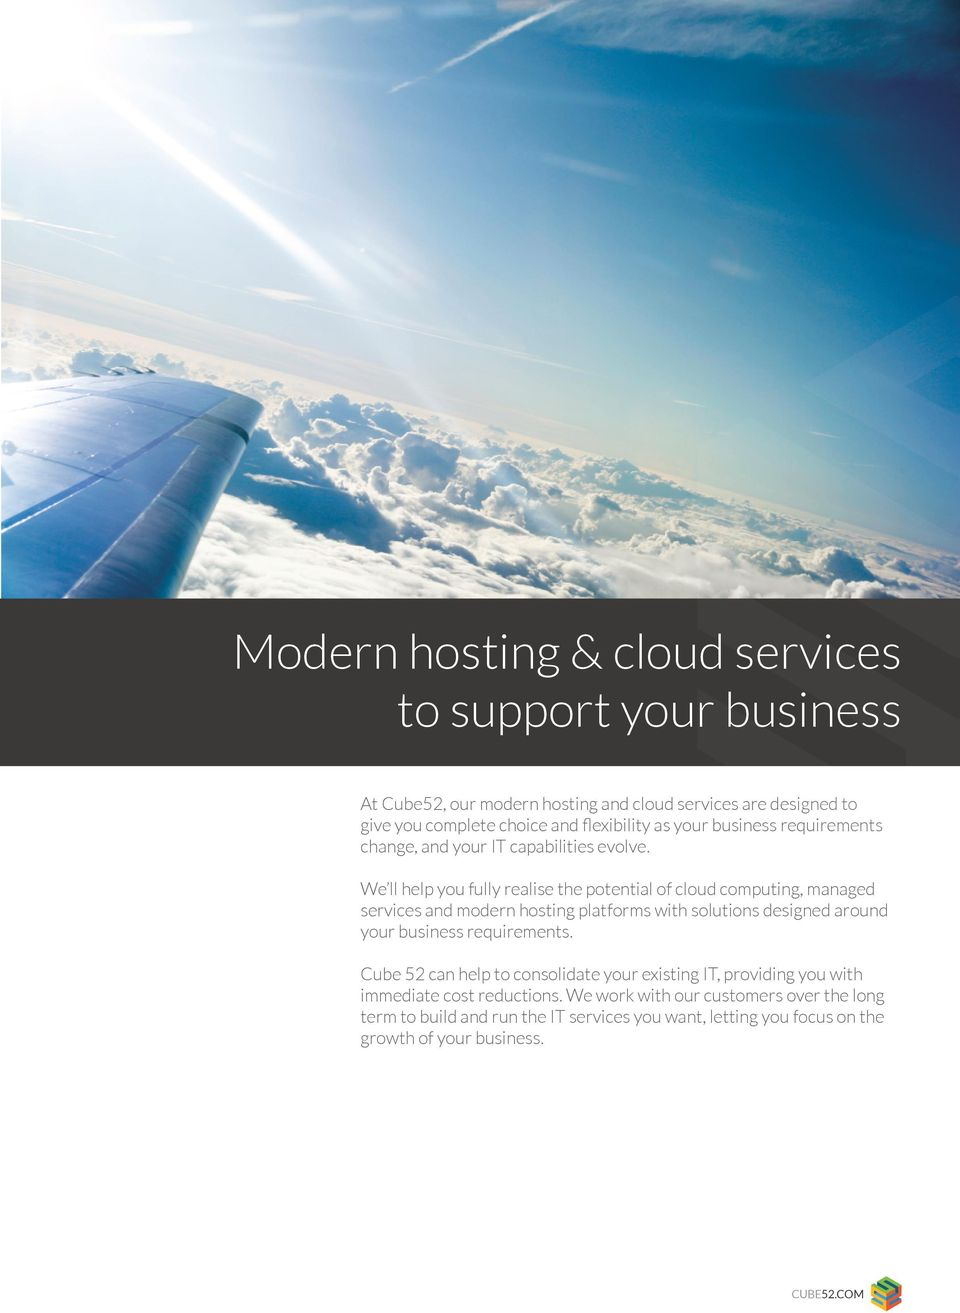 We ll help you fully realise the potential of cloud computing, managed services and modern hosting platforms with solutions designed around your business